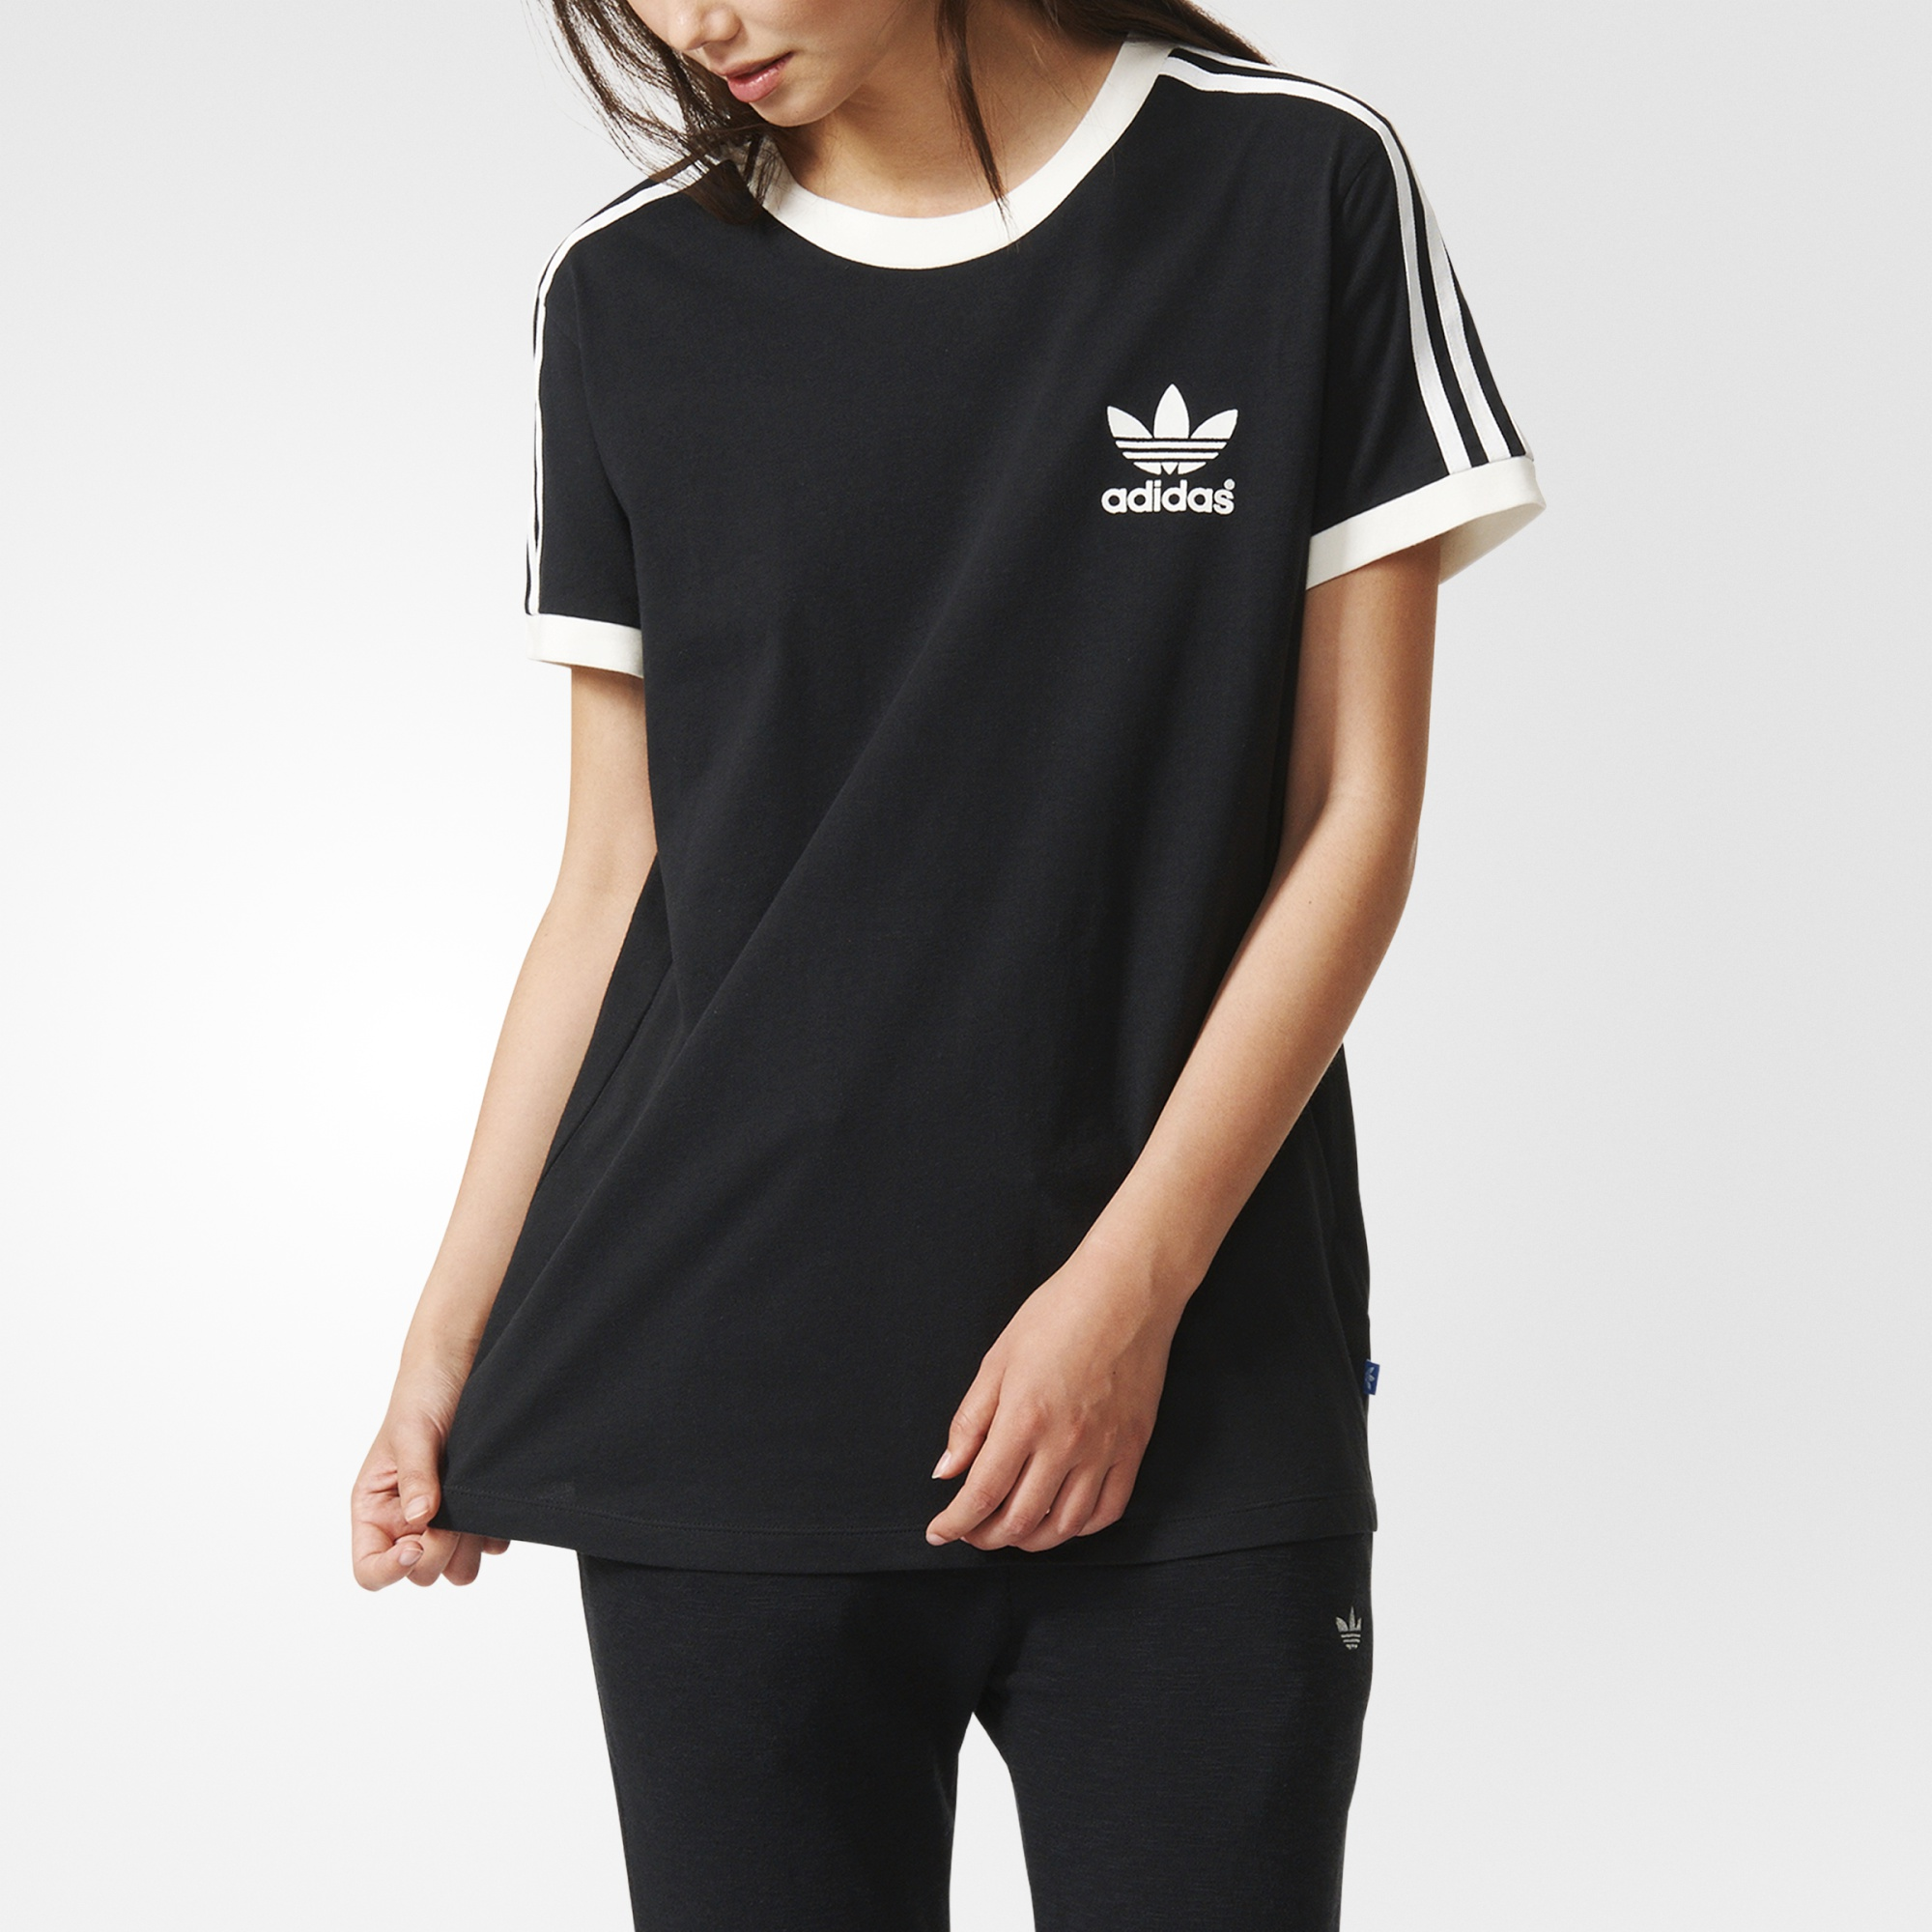 adidas t shirt 3 stripe